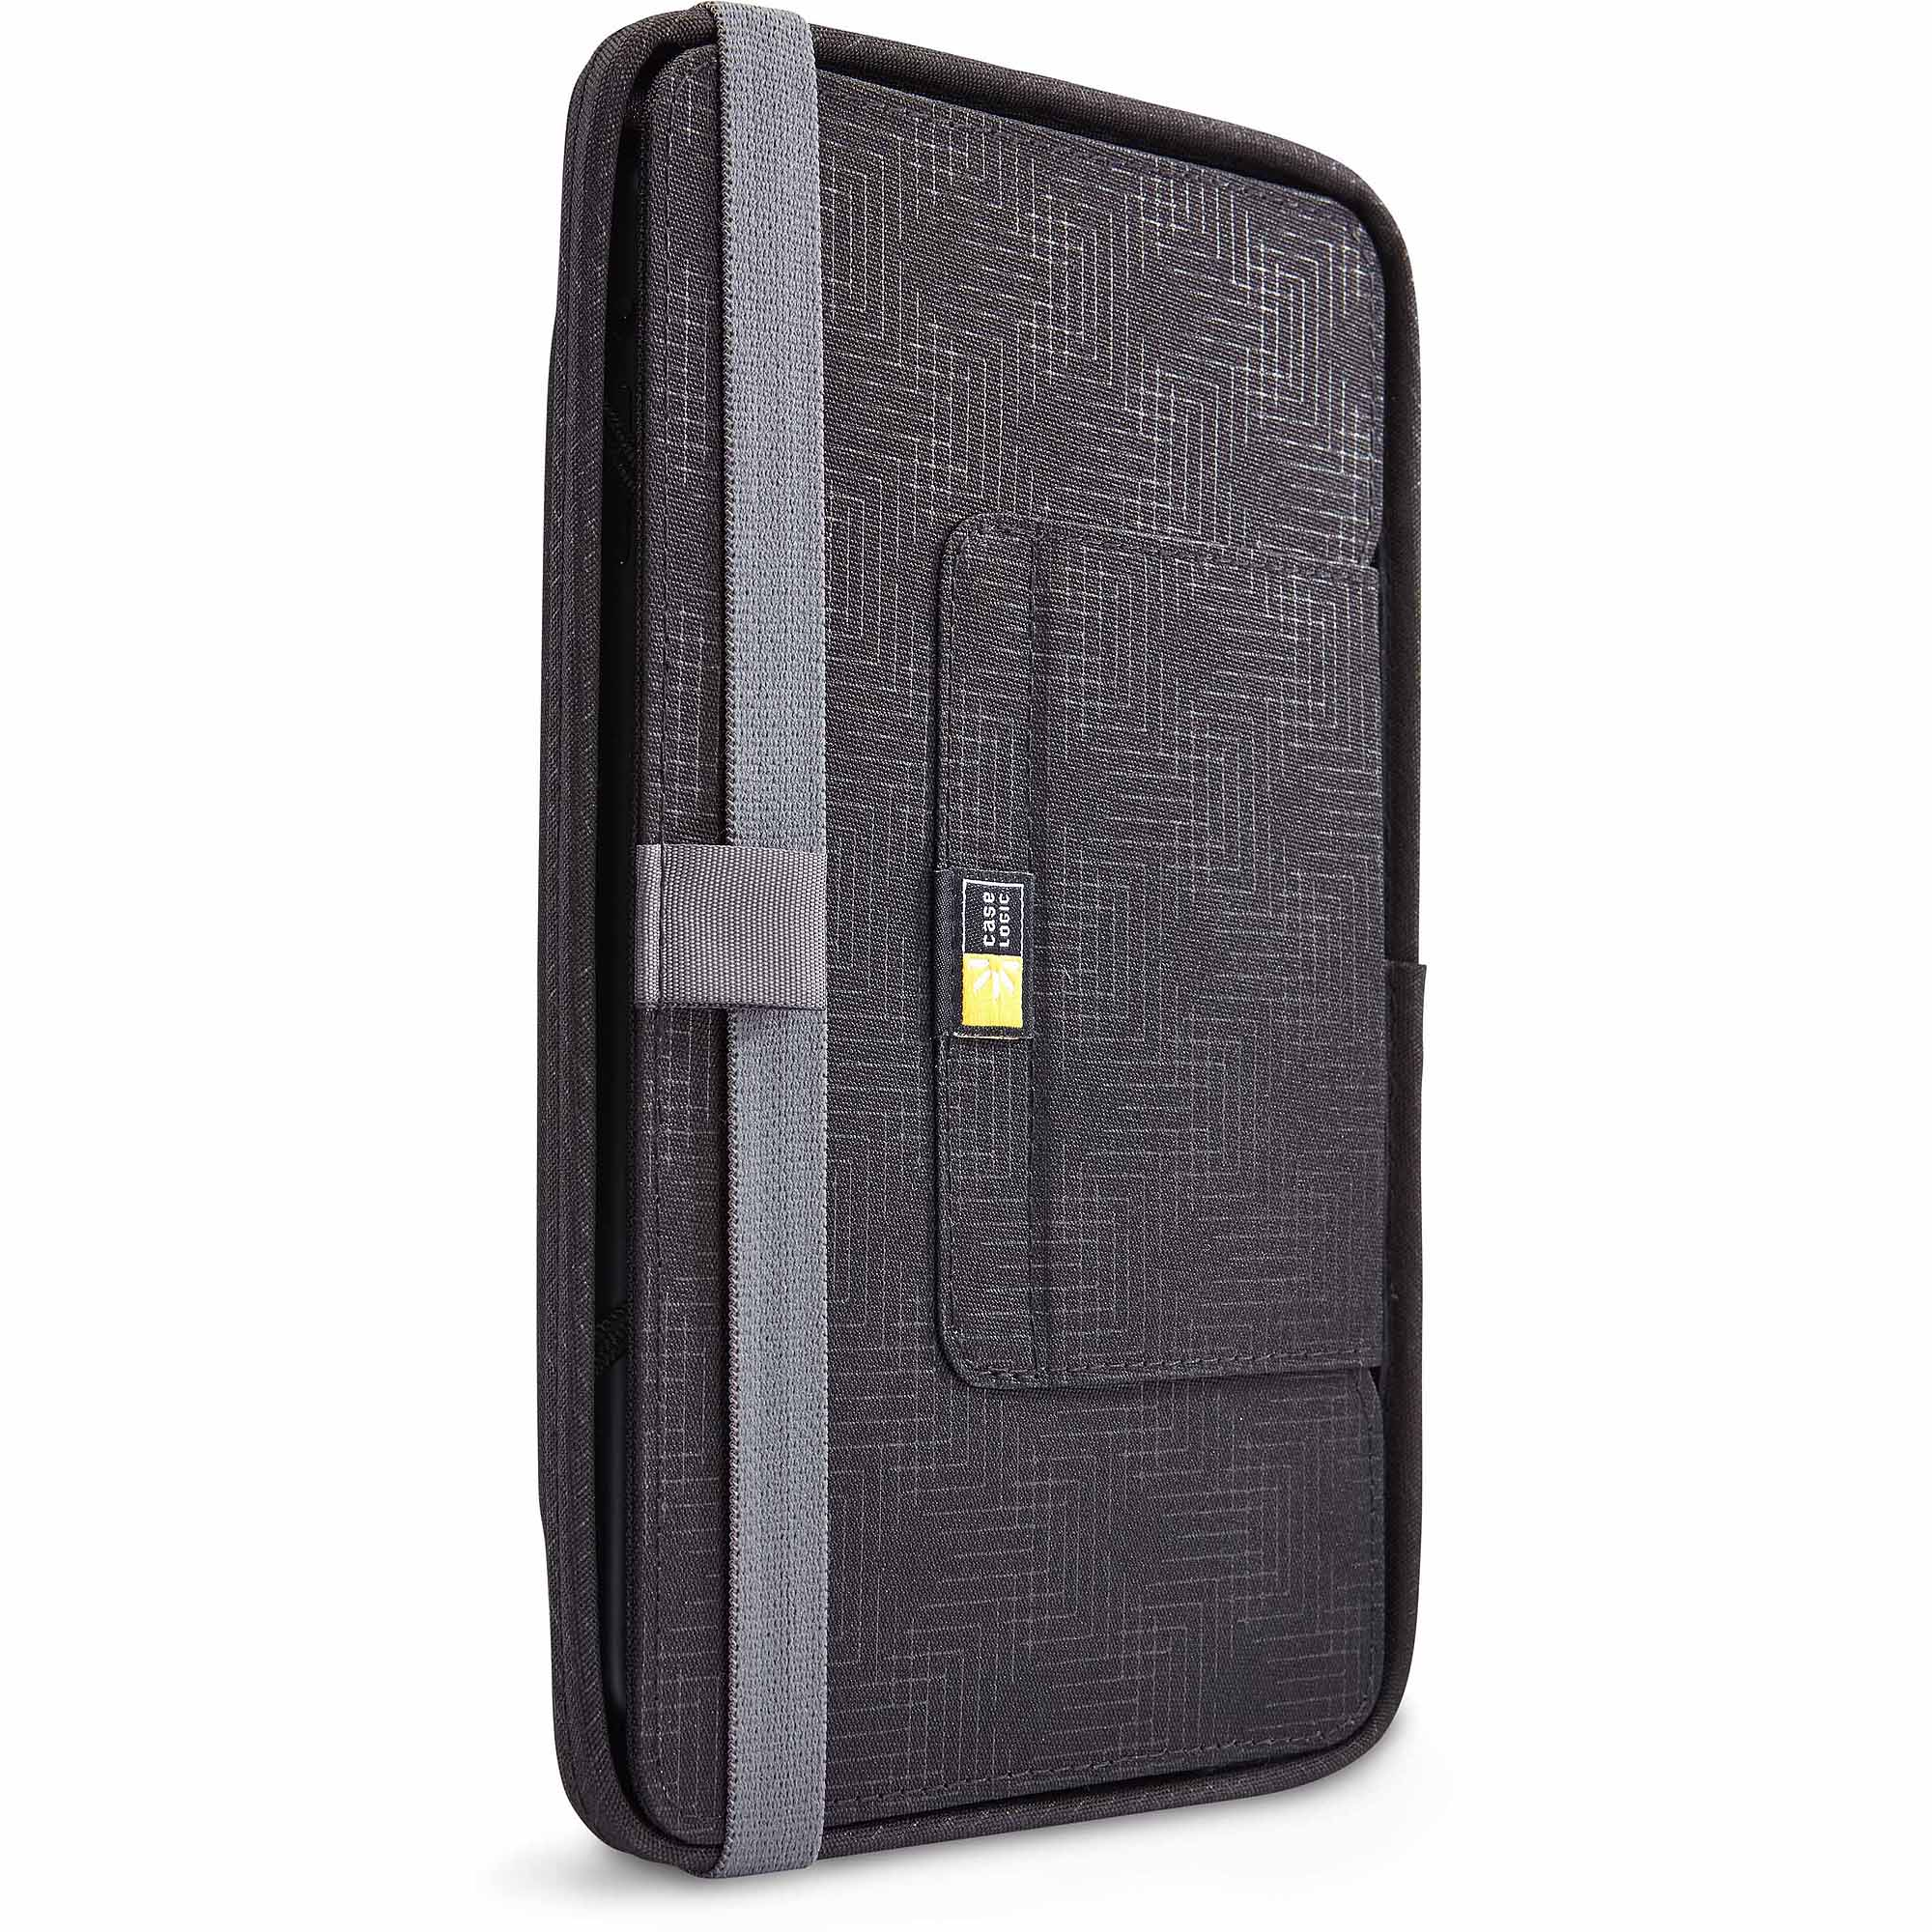 "Case Logic CQUE-3108 QuickFlip 8"" Tablet Case with In-Case Usability, Black by Case Logic"